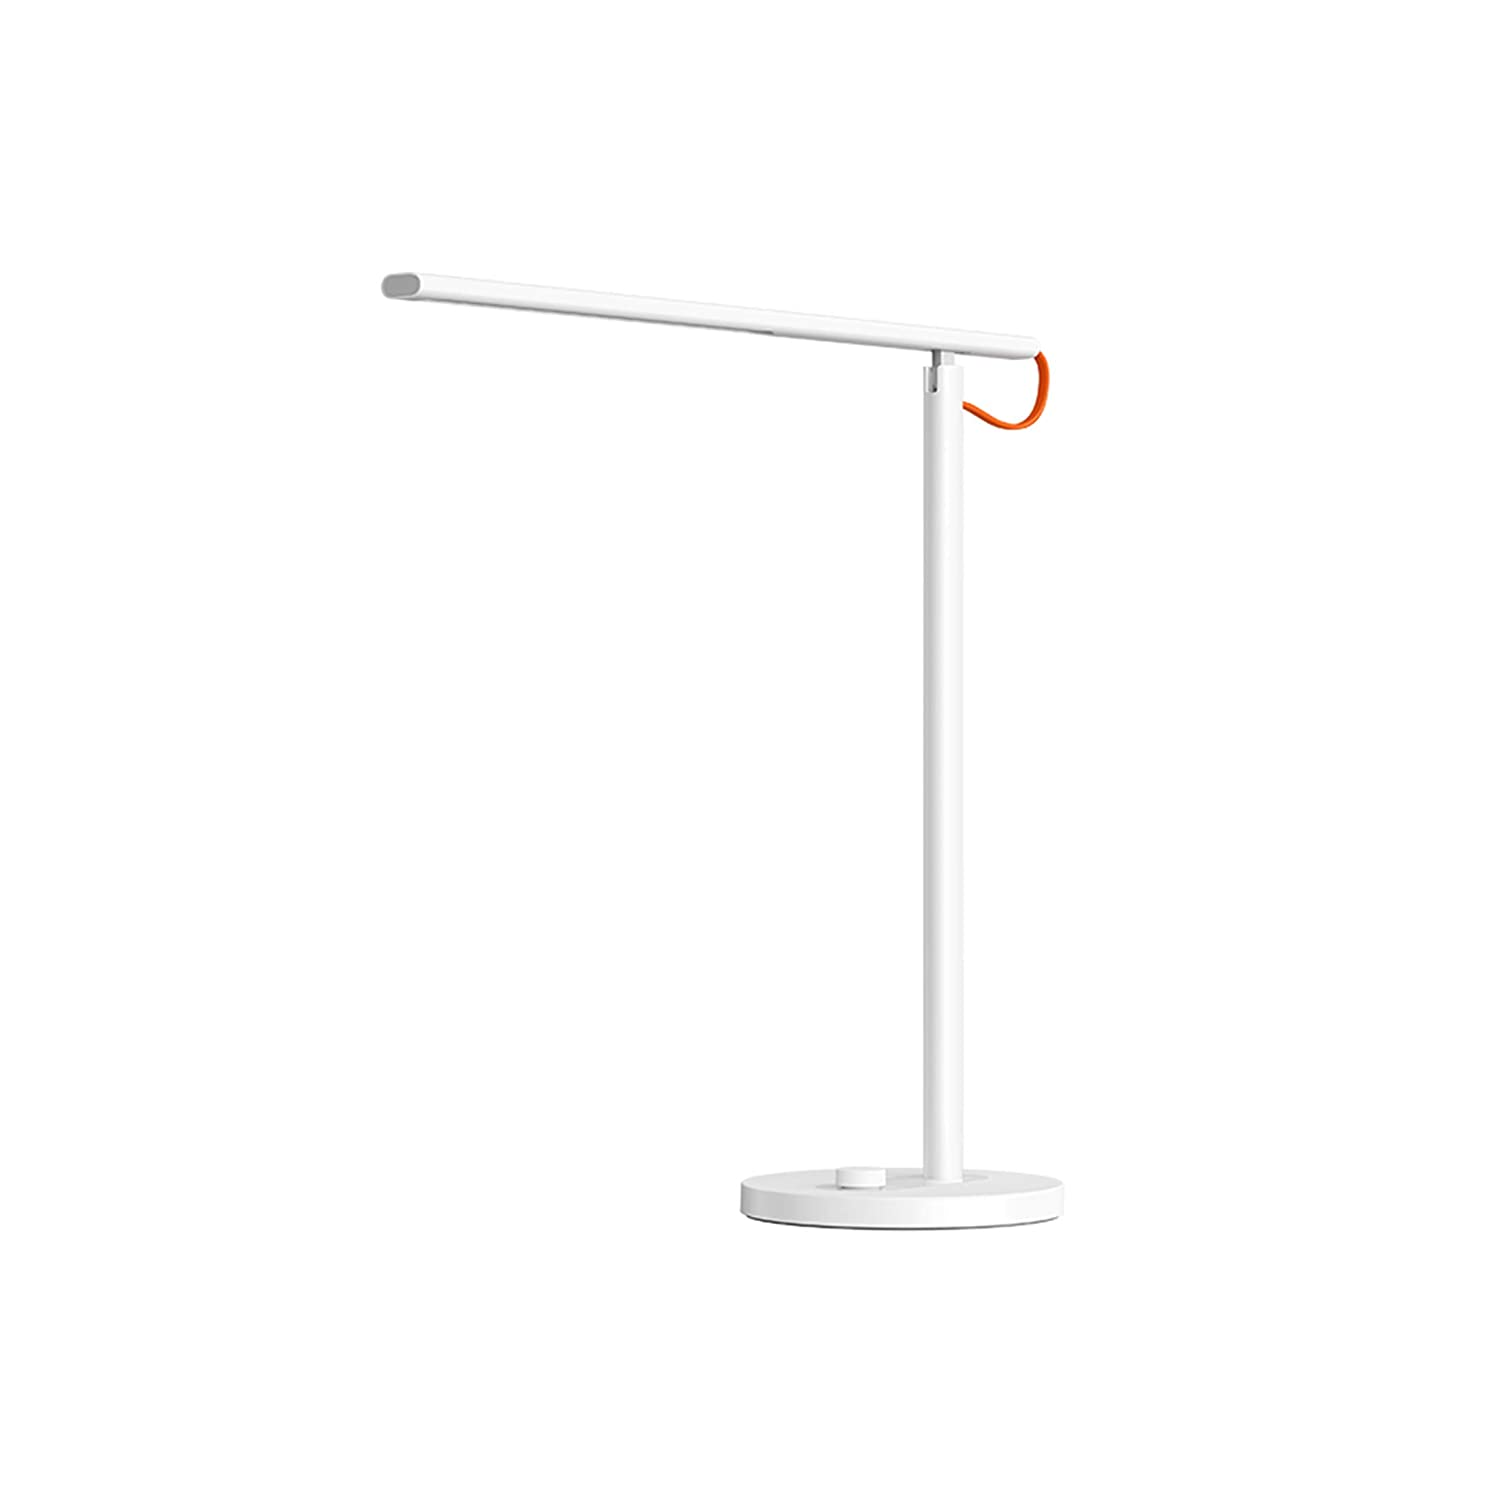 Mi Smart LED Desk Lamp 1S (10W, 520 Lumens, Wi-Fi-Enabled)